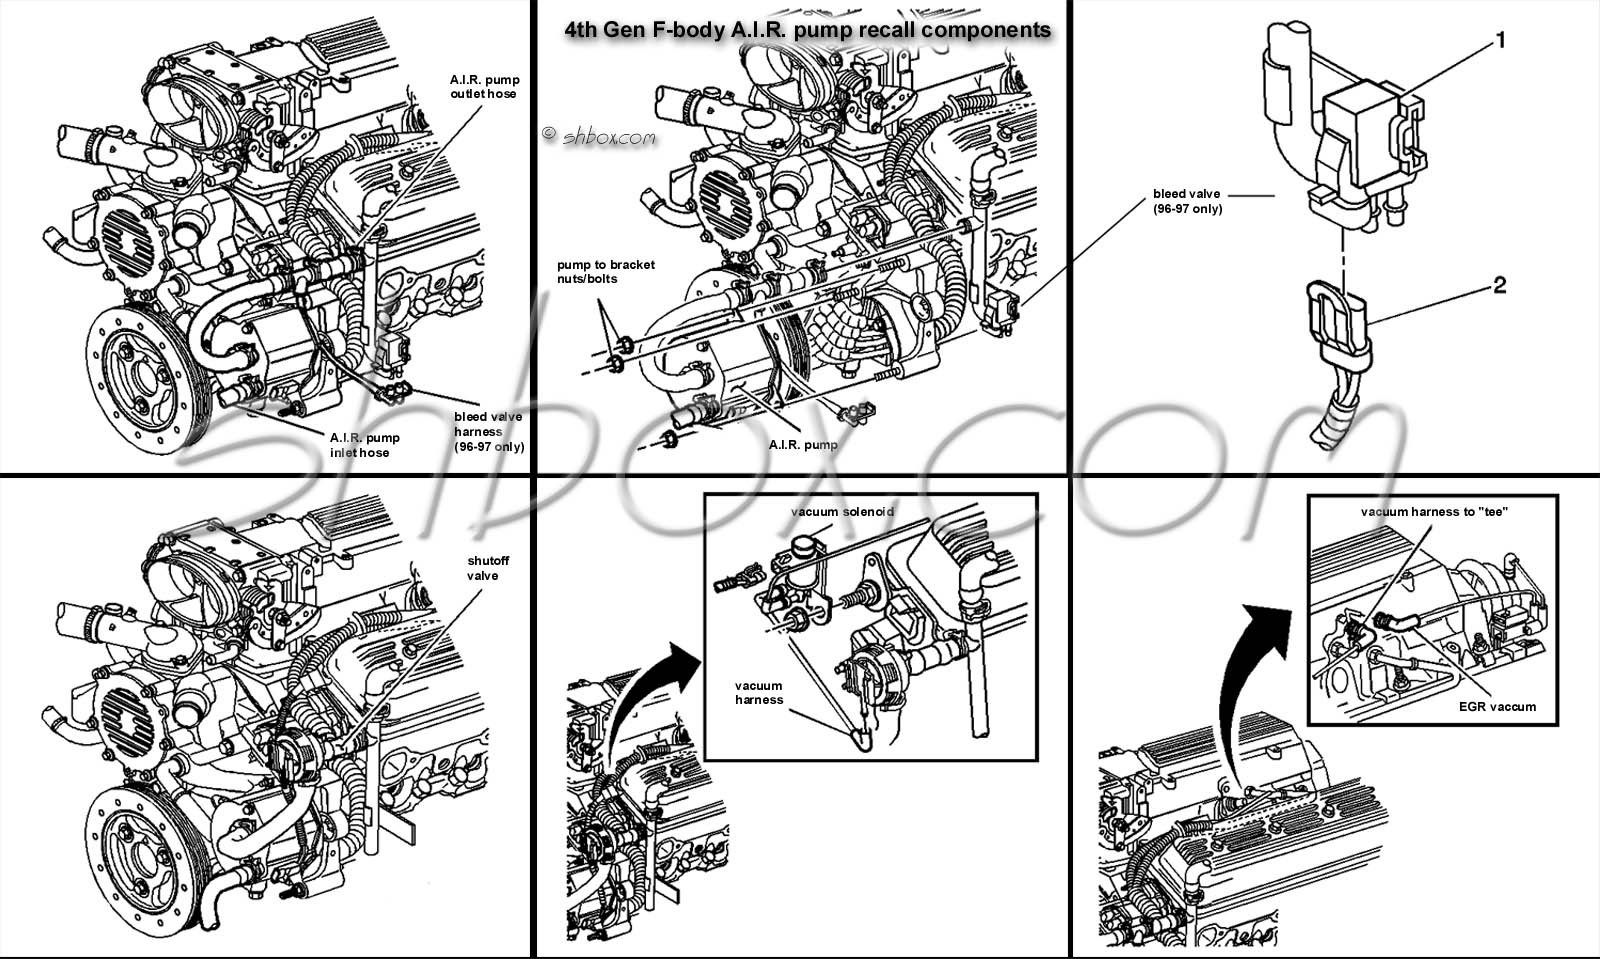 hight resolution of 96 camaro engine diagram wiring diagram blogs 98 civic engine diagram 4th gen lt1 f body